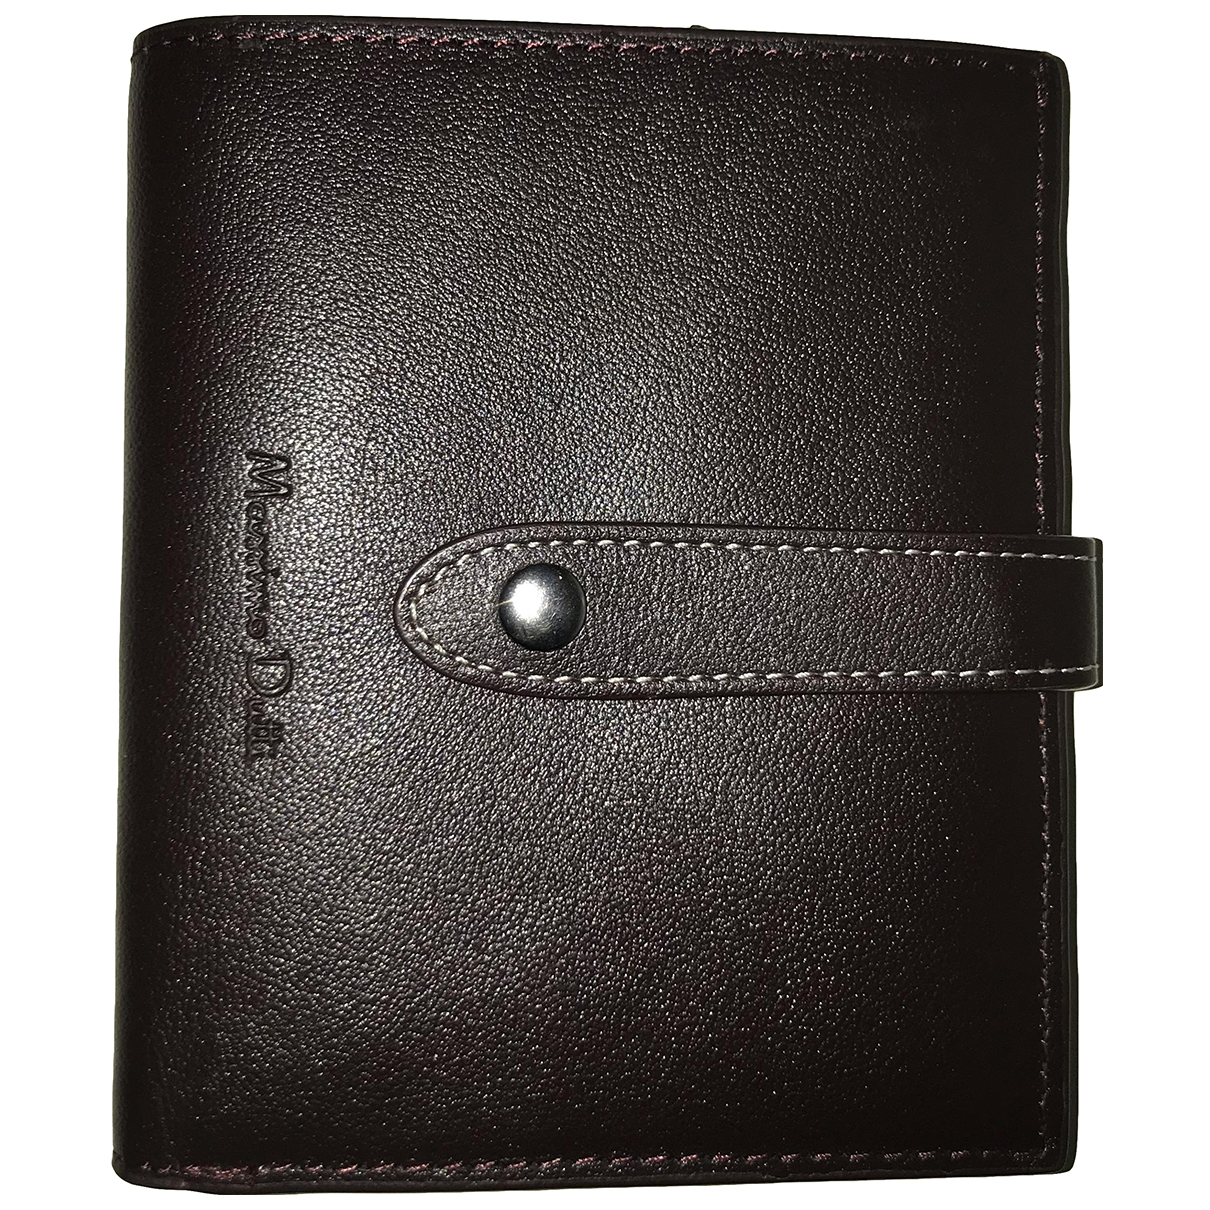 Massimo Dutti \N Brown Leather wallet for Women \N